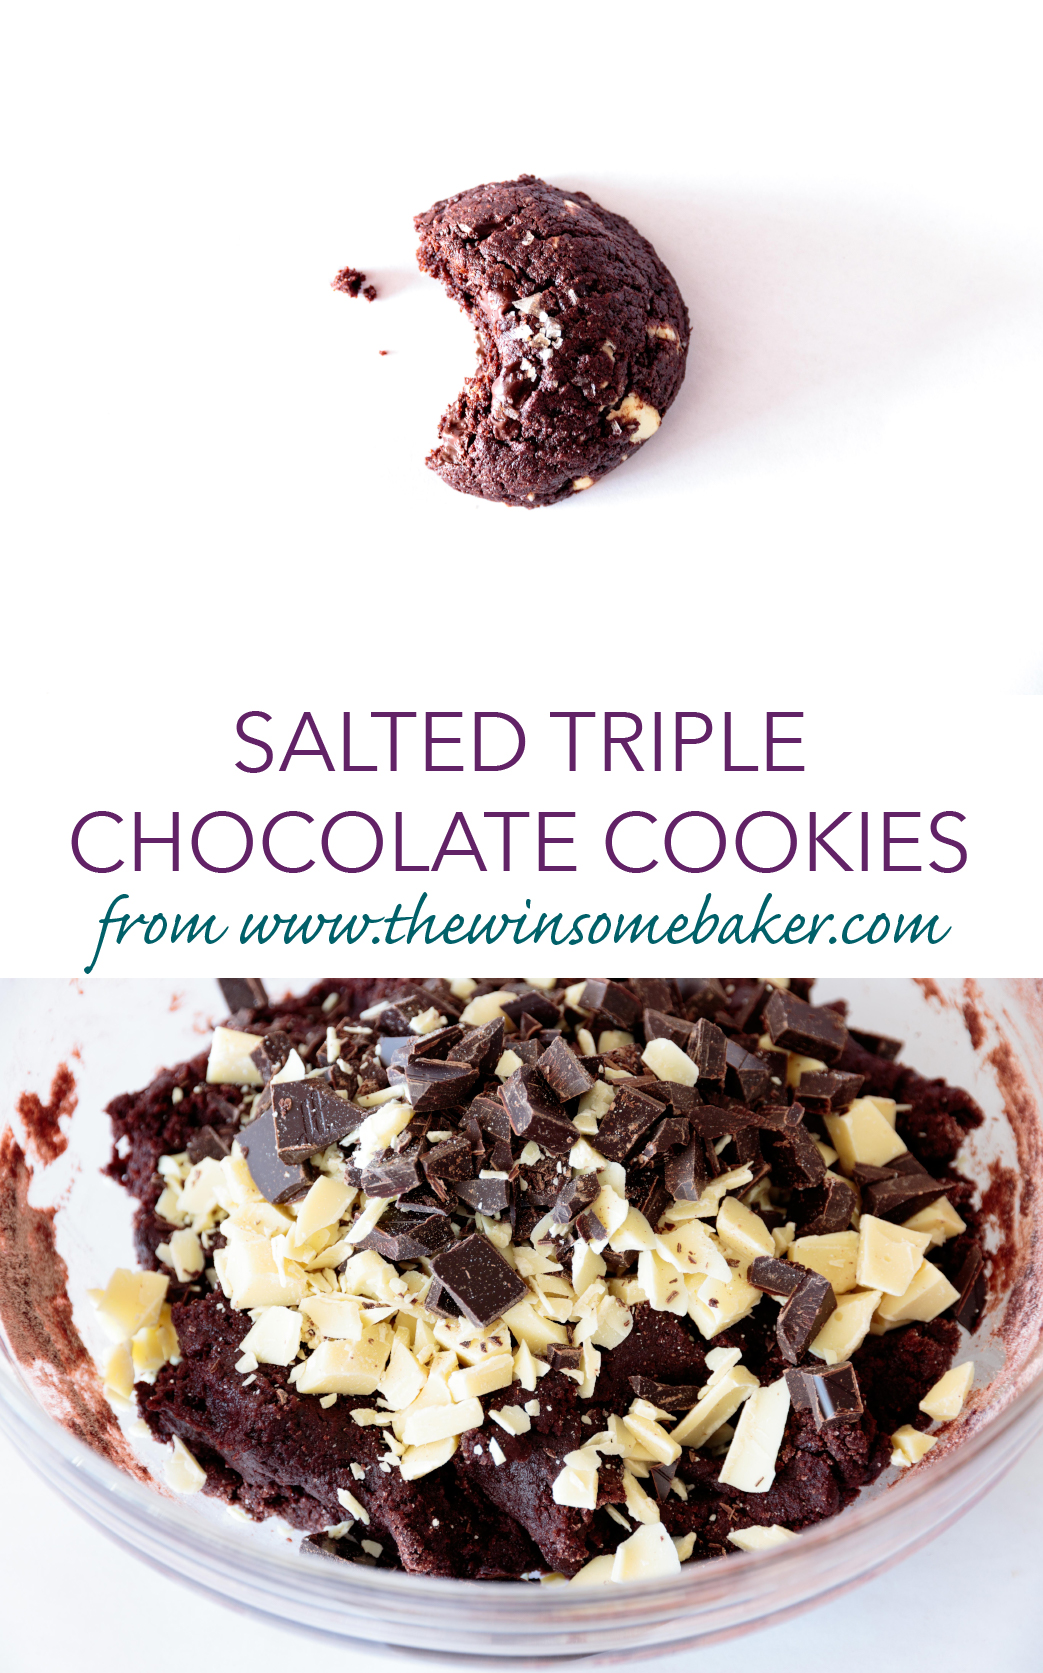 Salted Triple Chocolate Cookies | The Winsome Baker